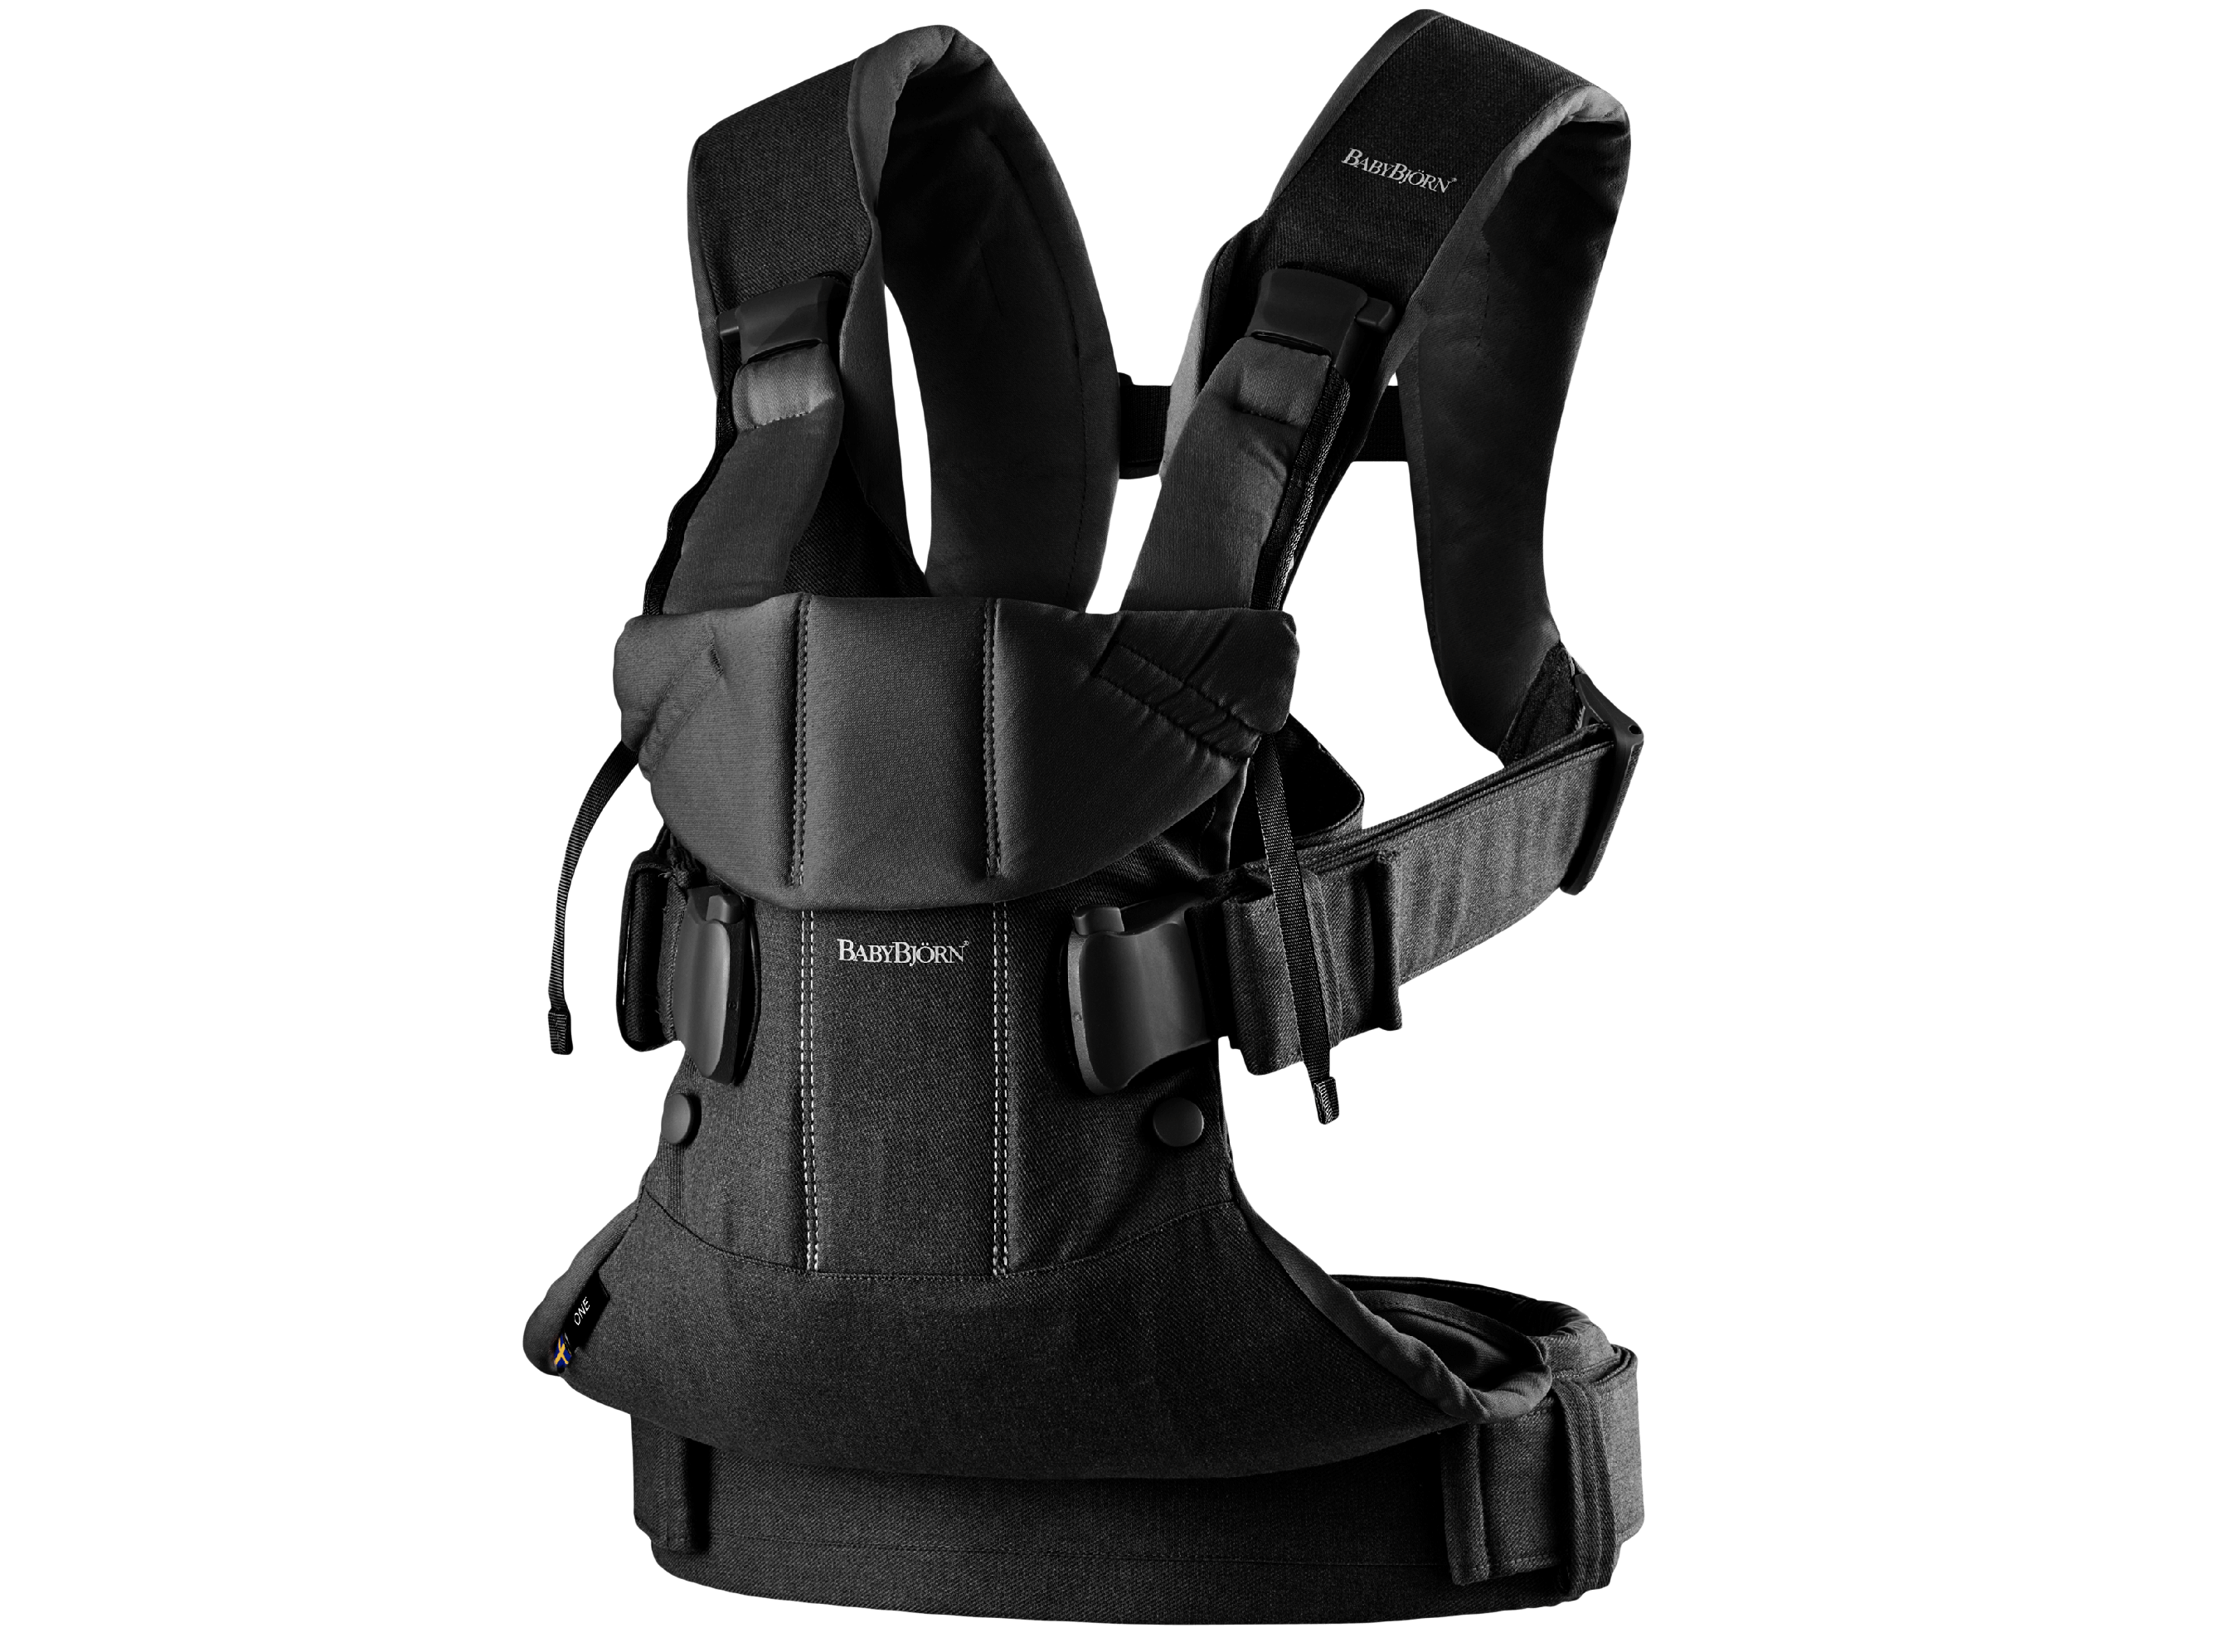 Baby Carrier One Air in black cotton mix, an ergonomic, soft and flexible baby carrier that can be used from new born to 3 years old, including front facing and back carrying.